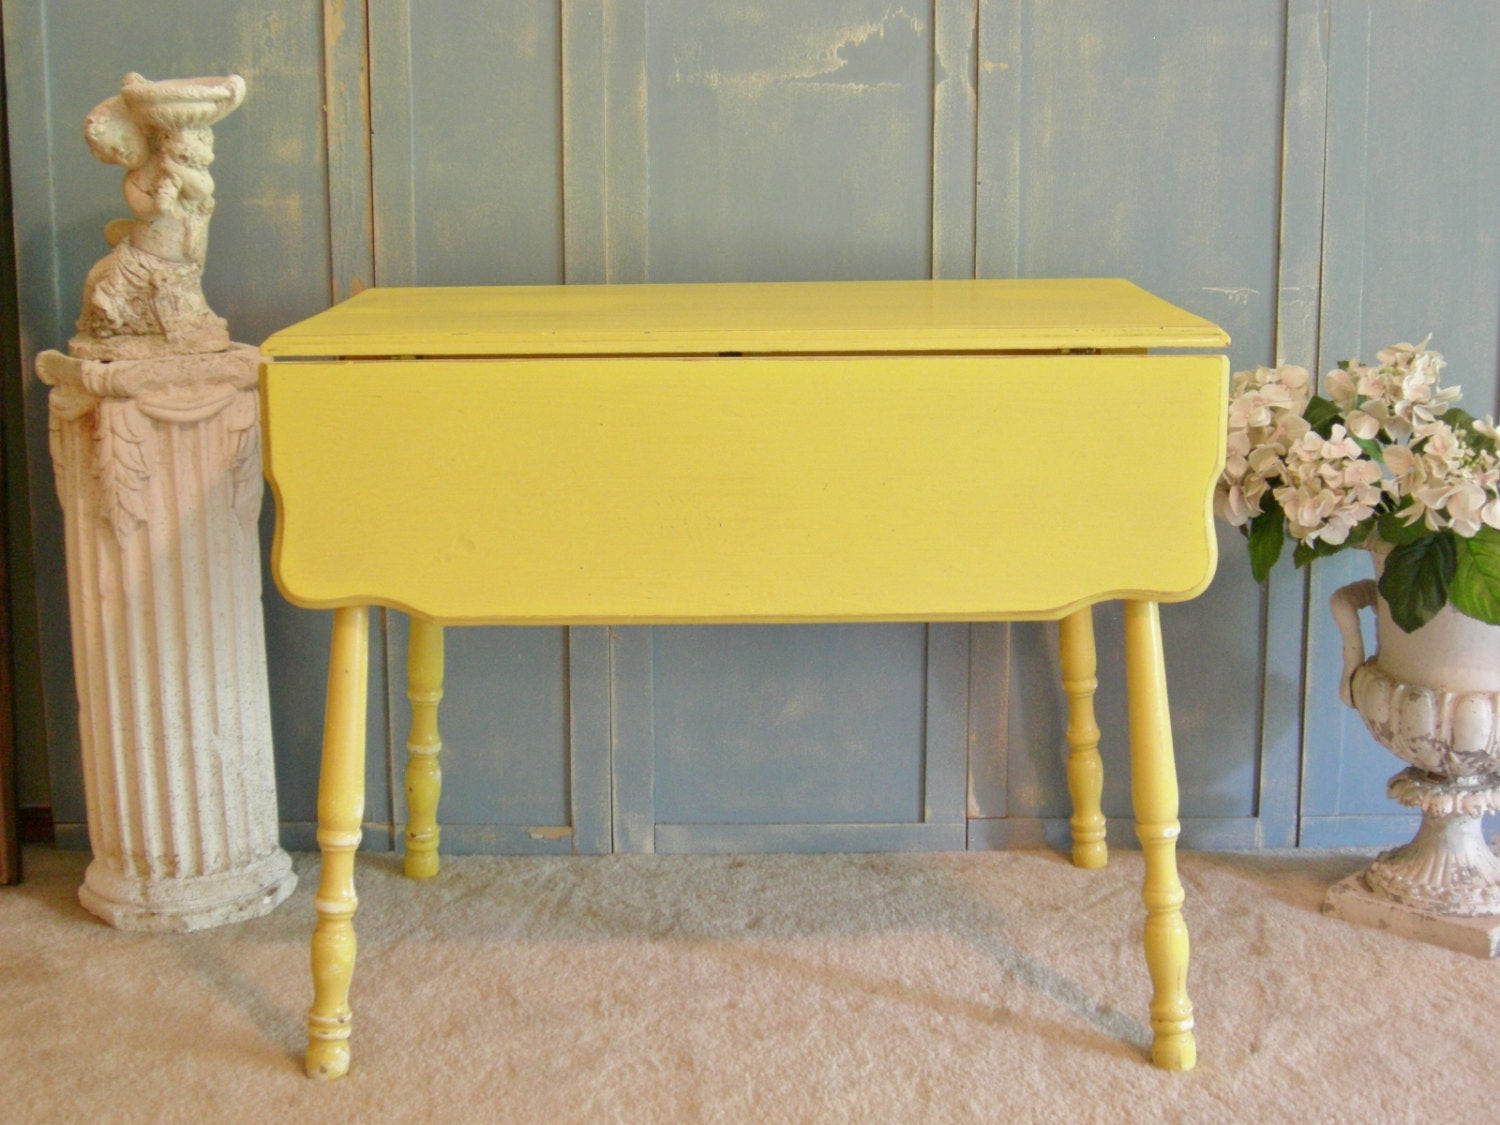 Best ideas about Shabby Chic Kitchen Table . Save or Pin DROP LEAF Kitchen Table Shabby Chic Kitchen Island Entry Now.